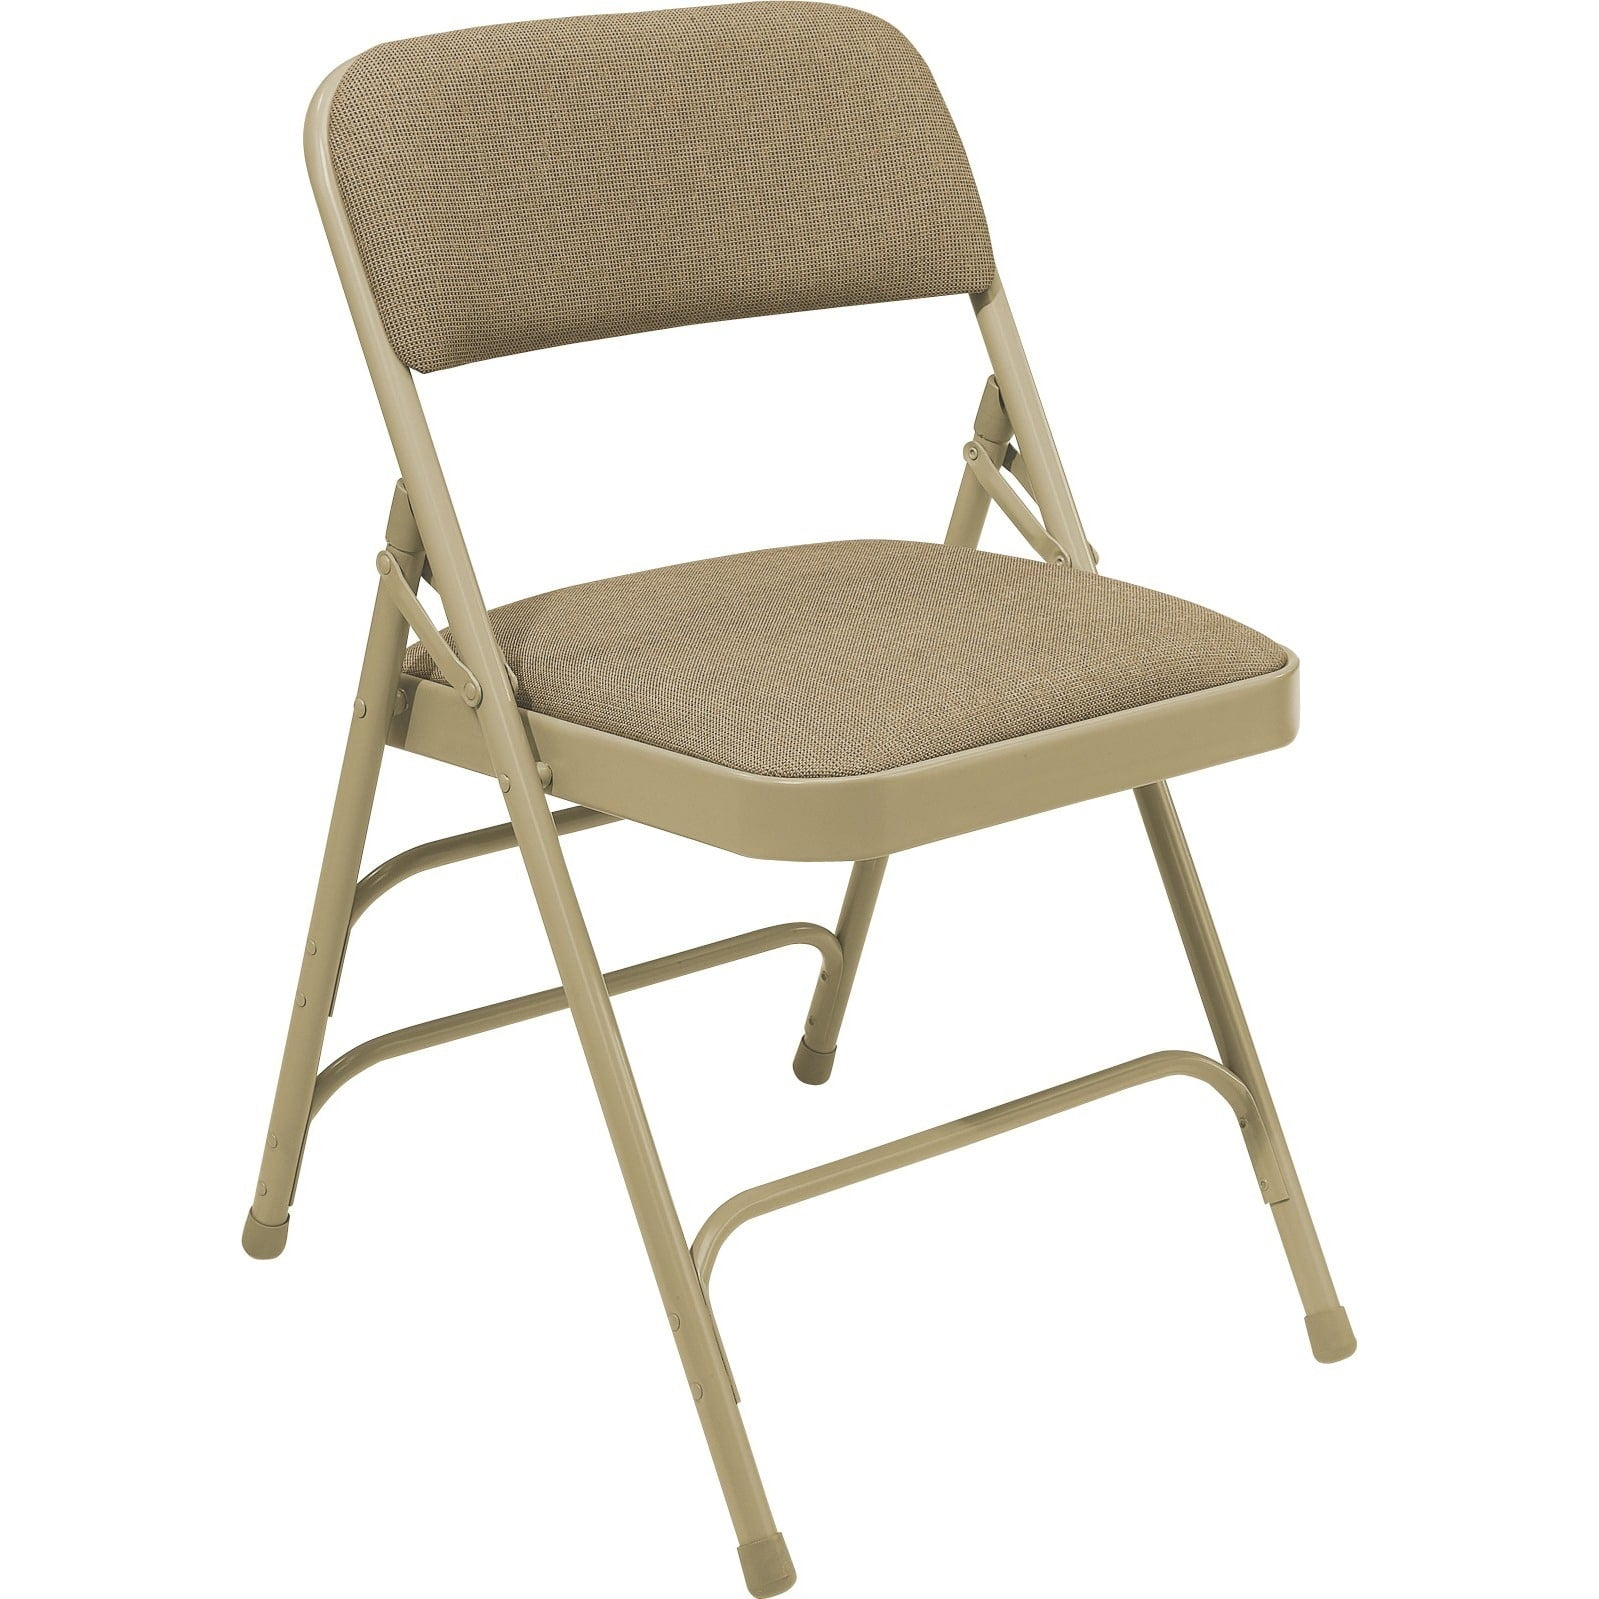 Fabric Upholstered Premium Reinforced Folding Chairs (Pack of 4)